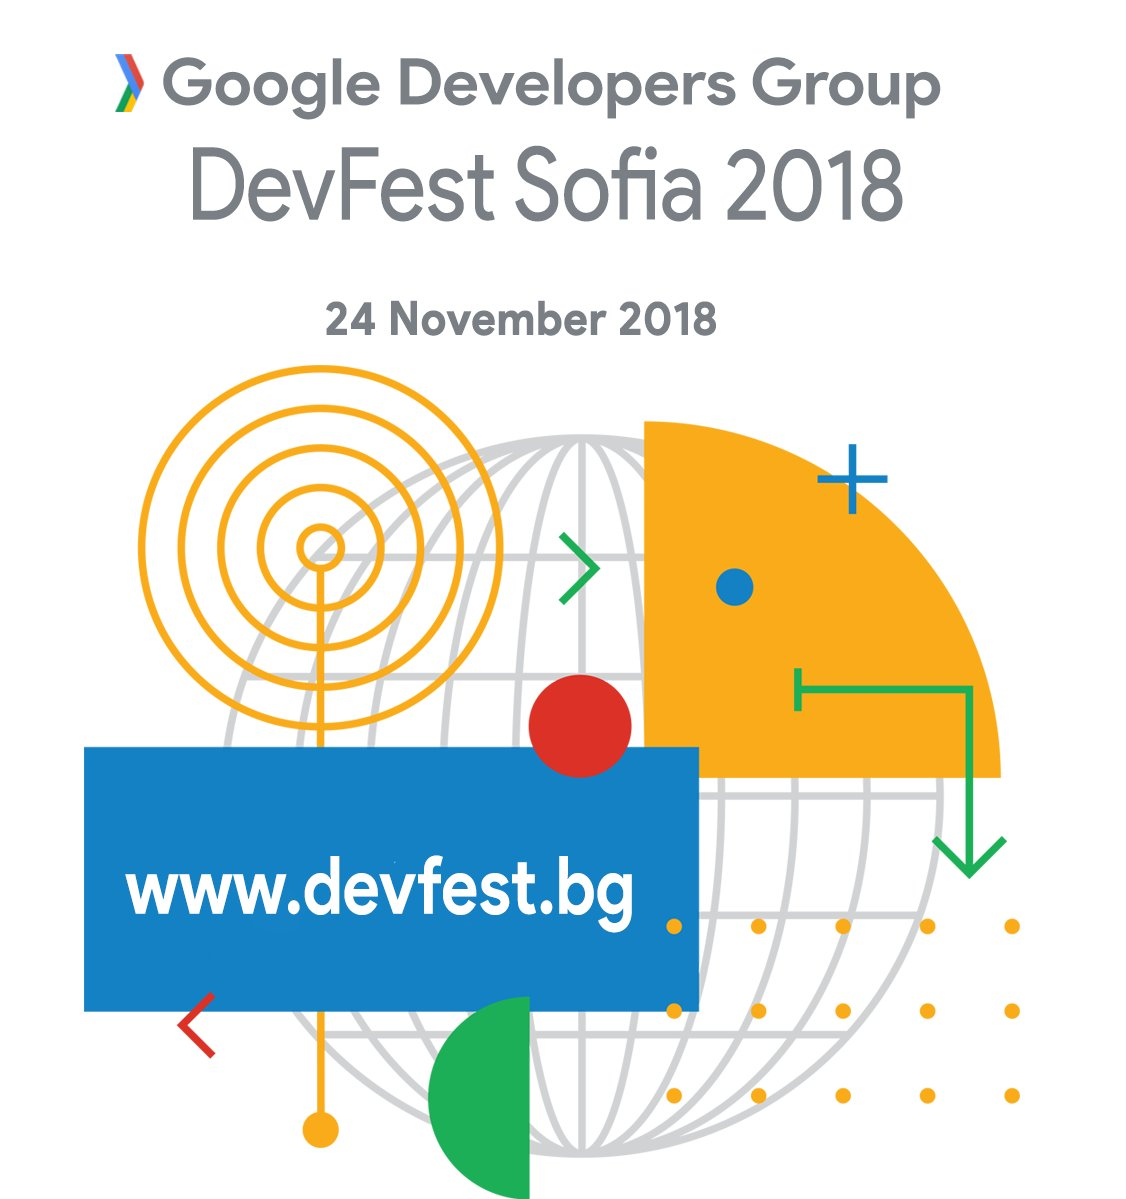 SoftServe's happy to be an official partner of DevFest 2018 Sofia! We joined the GCP Program in 2017 and have since completed trainings, successfully delivering complex implementations on GCP and met rigorous evaluations to achieve Google Cloud's highest partner status! https://t.co/lf297xDxTb